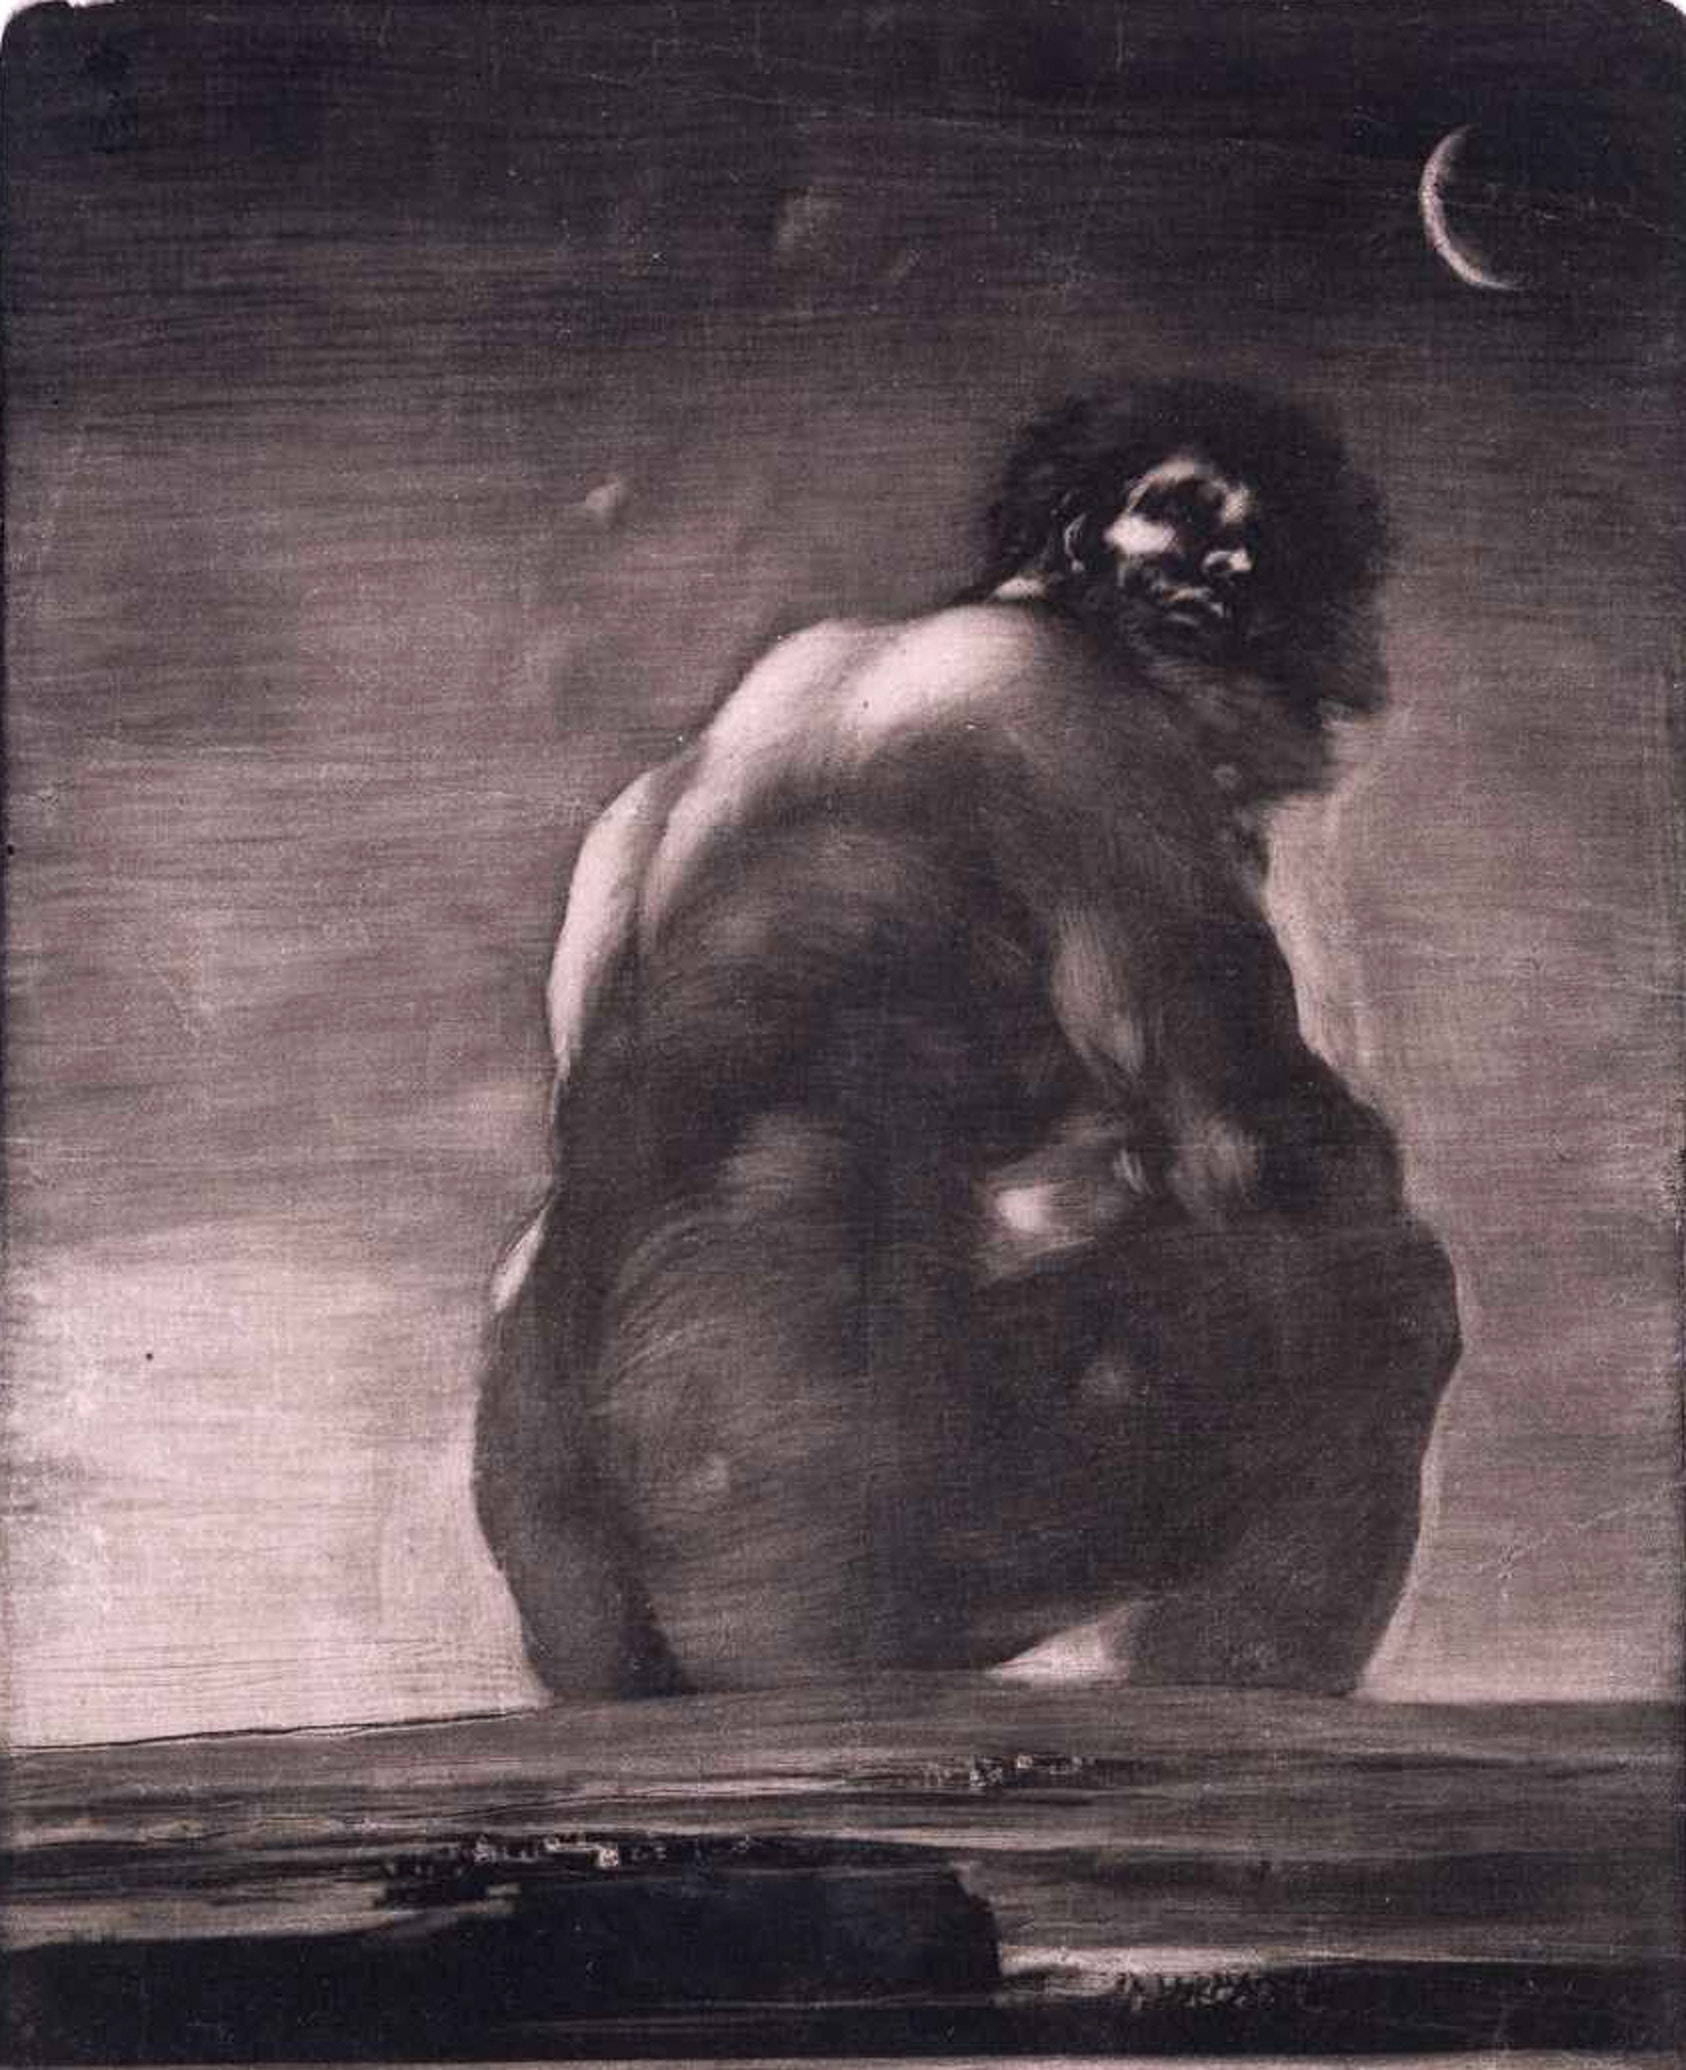 'Coloso,' by Goya, is one of several paintings that influenced Attack on Titan's titular monsters.